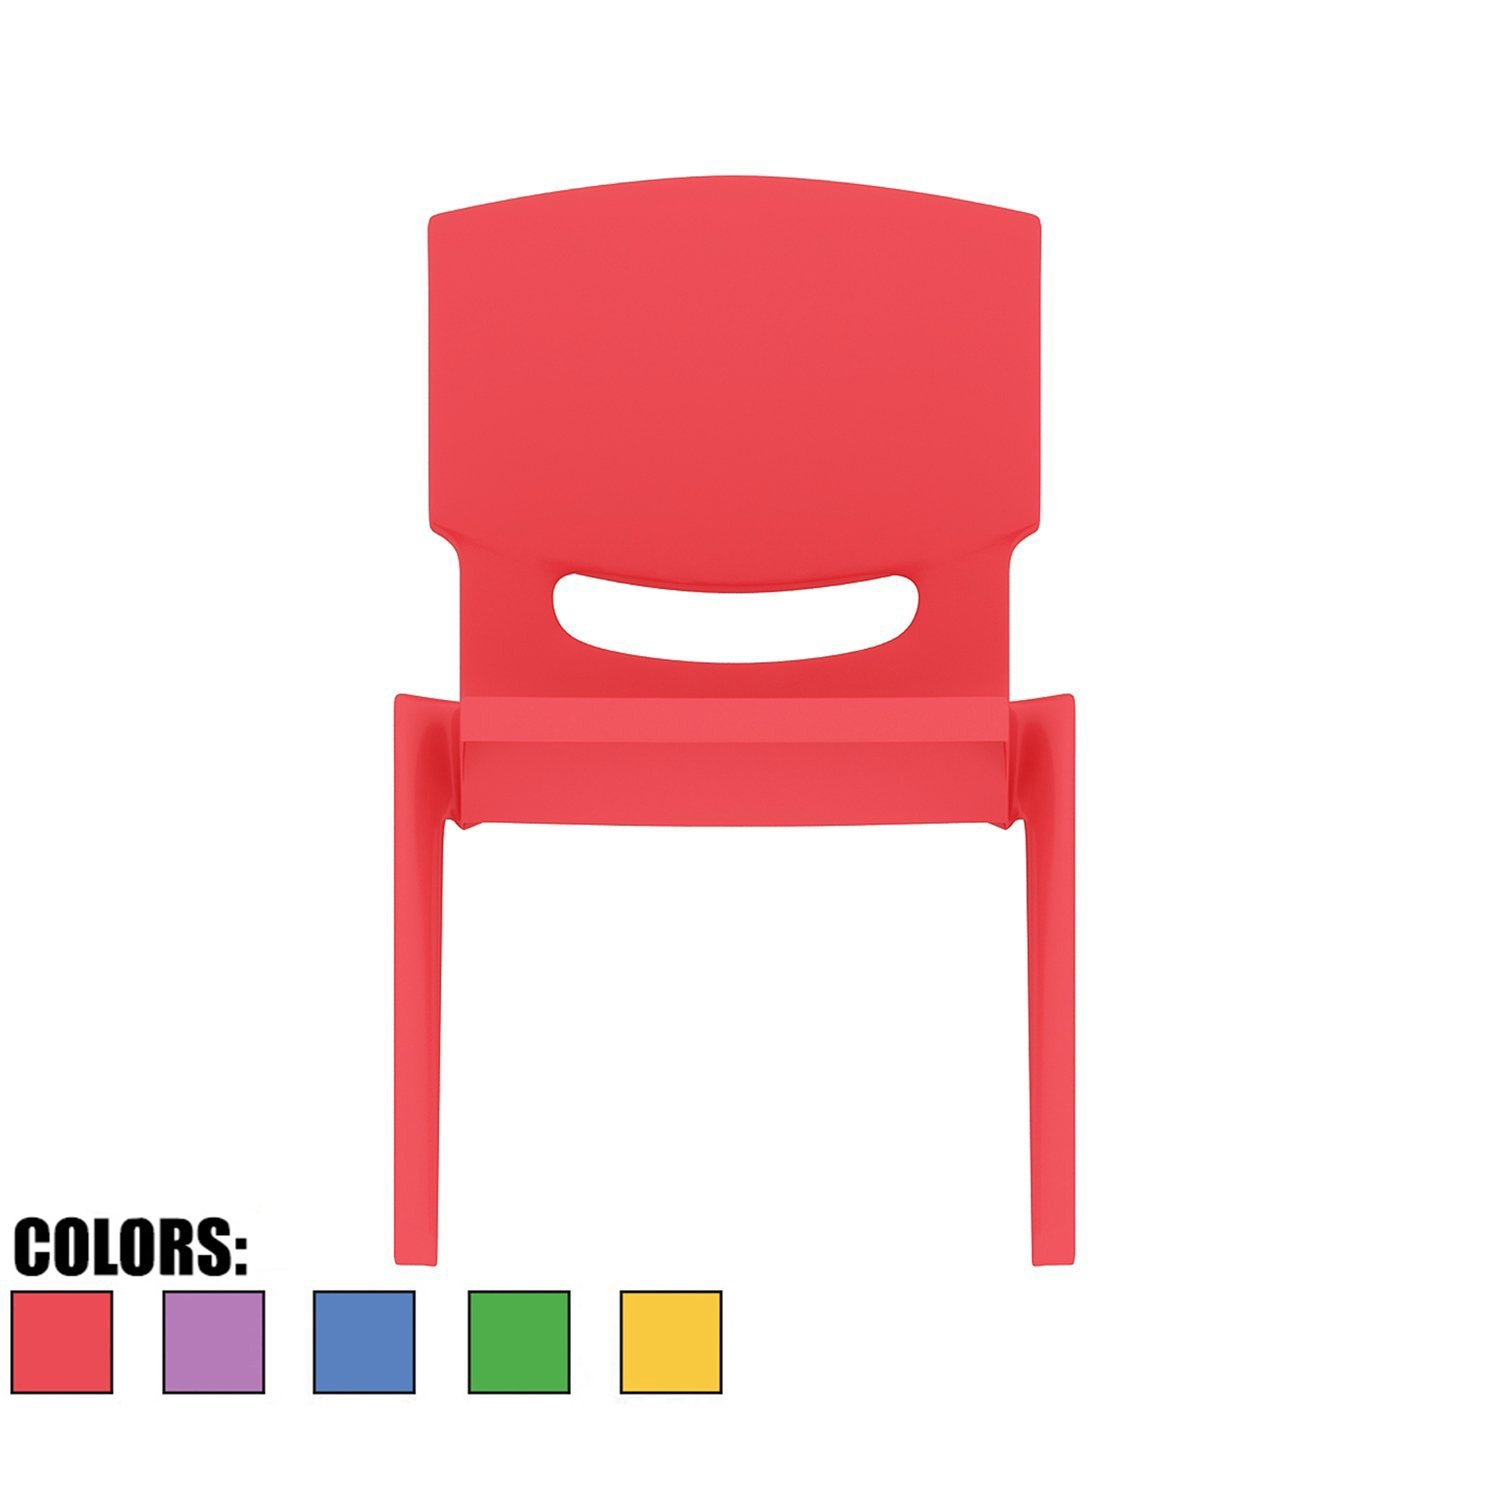 2xhome - Red - Kids Size Plastic Side Chair 10'' Seat Height Red Childs Chair Childrens Room School Chairs No Arm Arms Armless Molded Plastic Seat Stackable